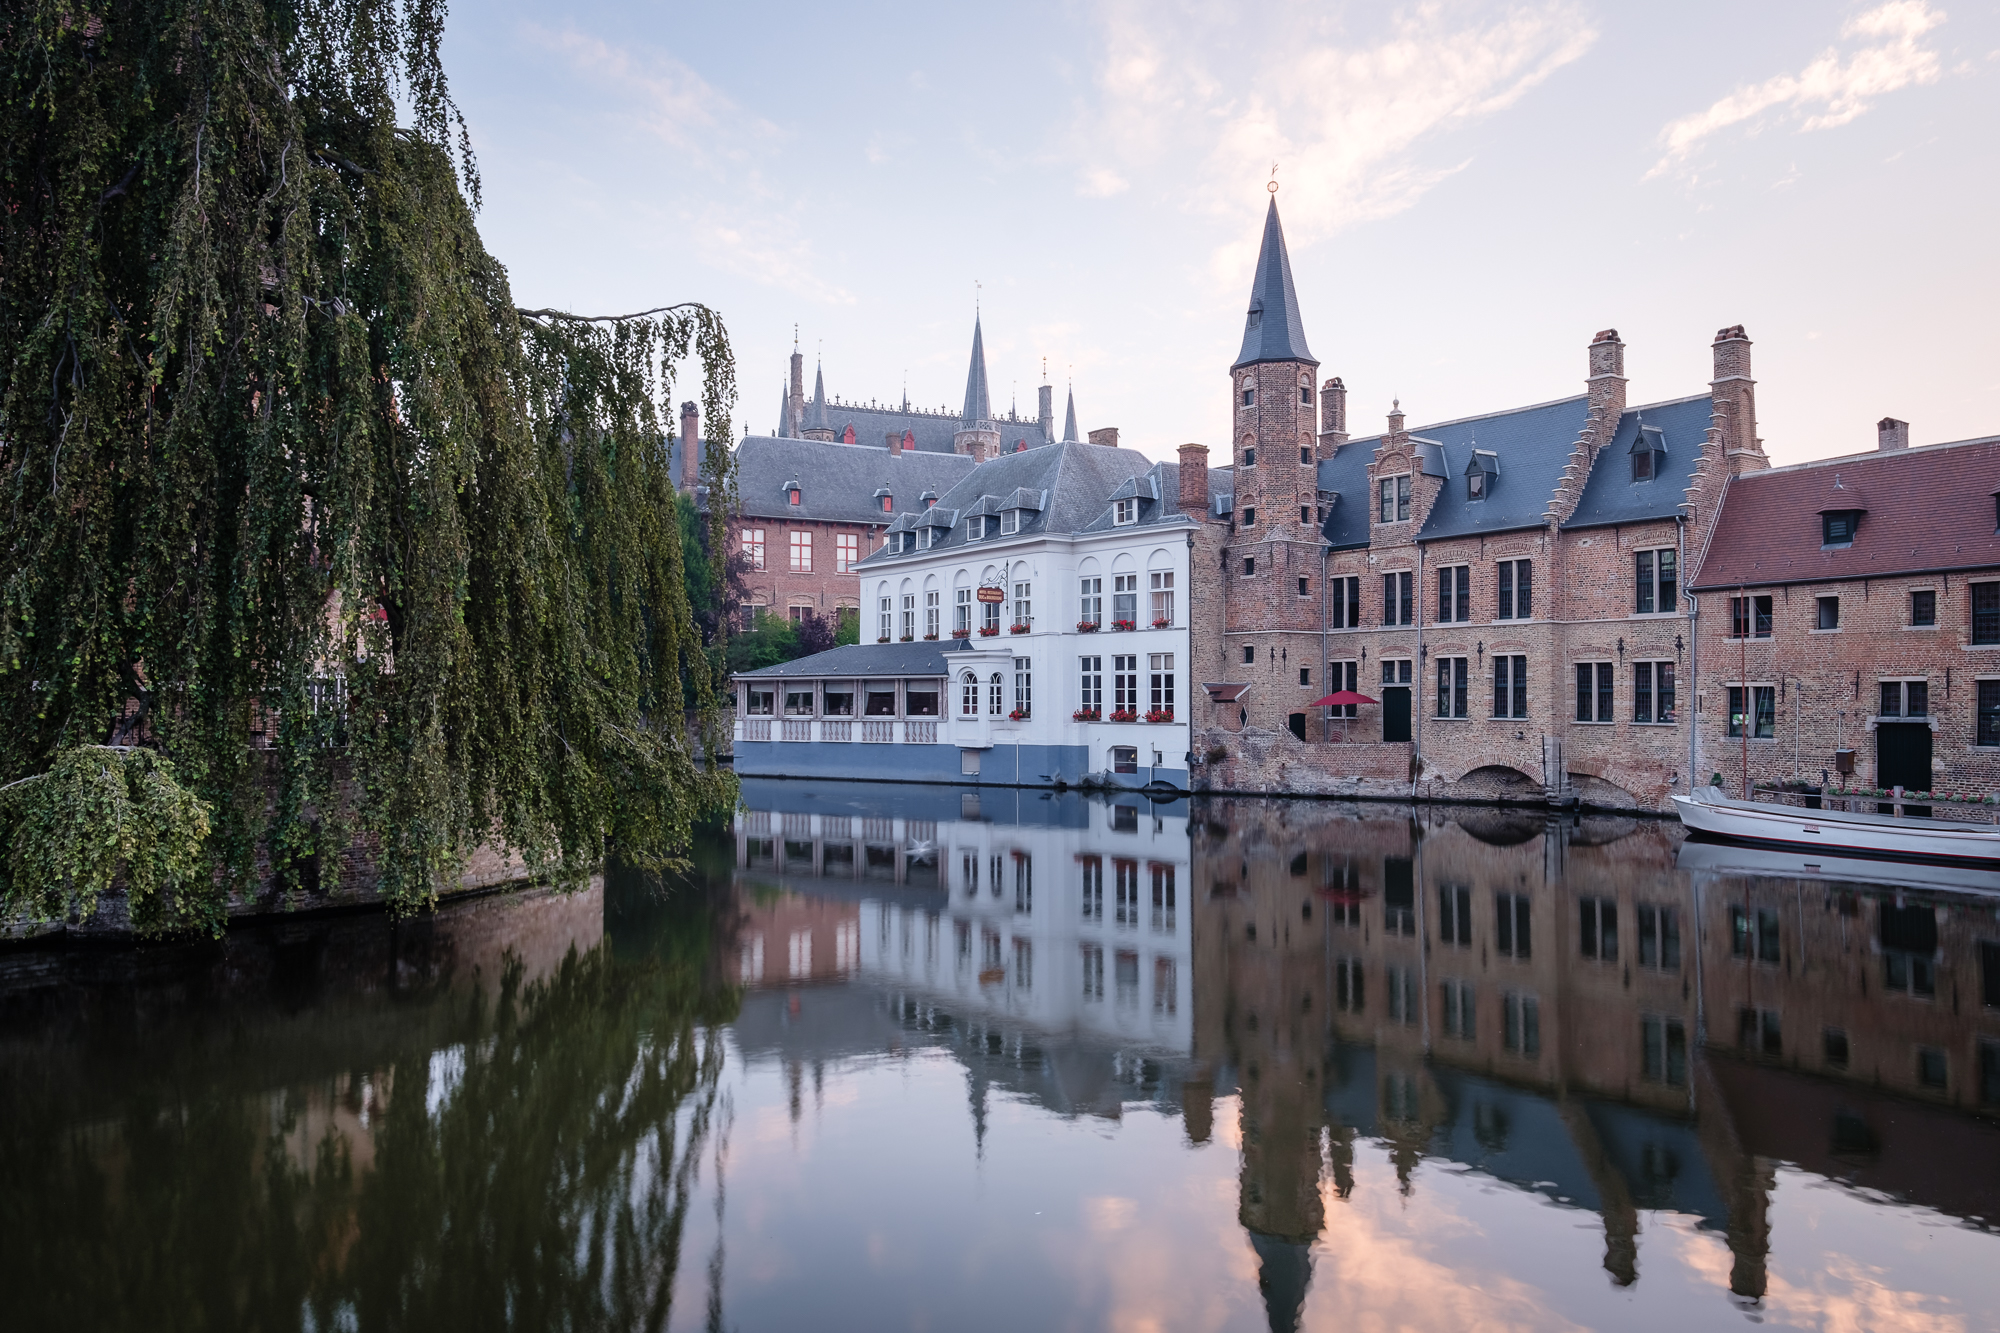 A photo of the Relais Bourgondisch Cruyce in Bruges, Belgium taken by Trevor Sherwin